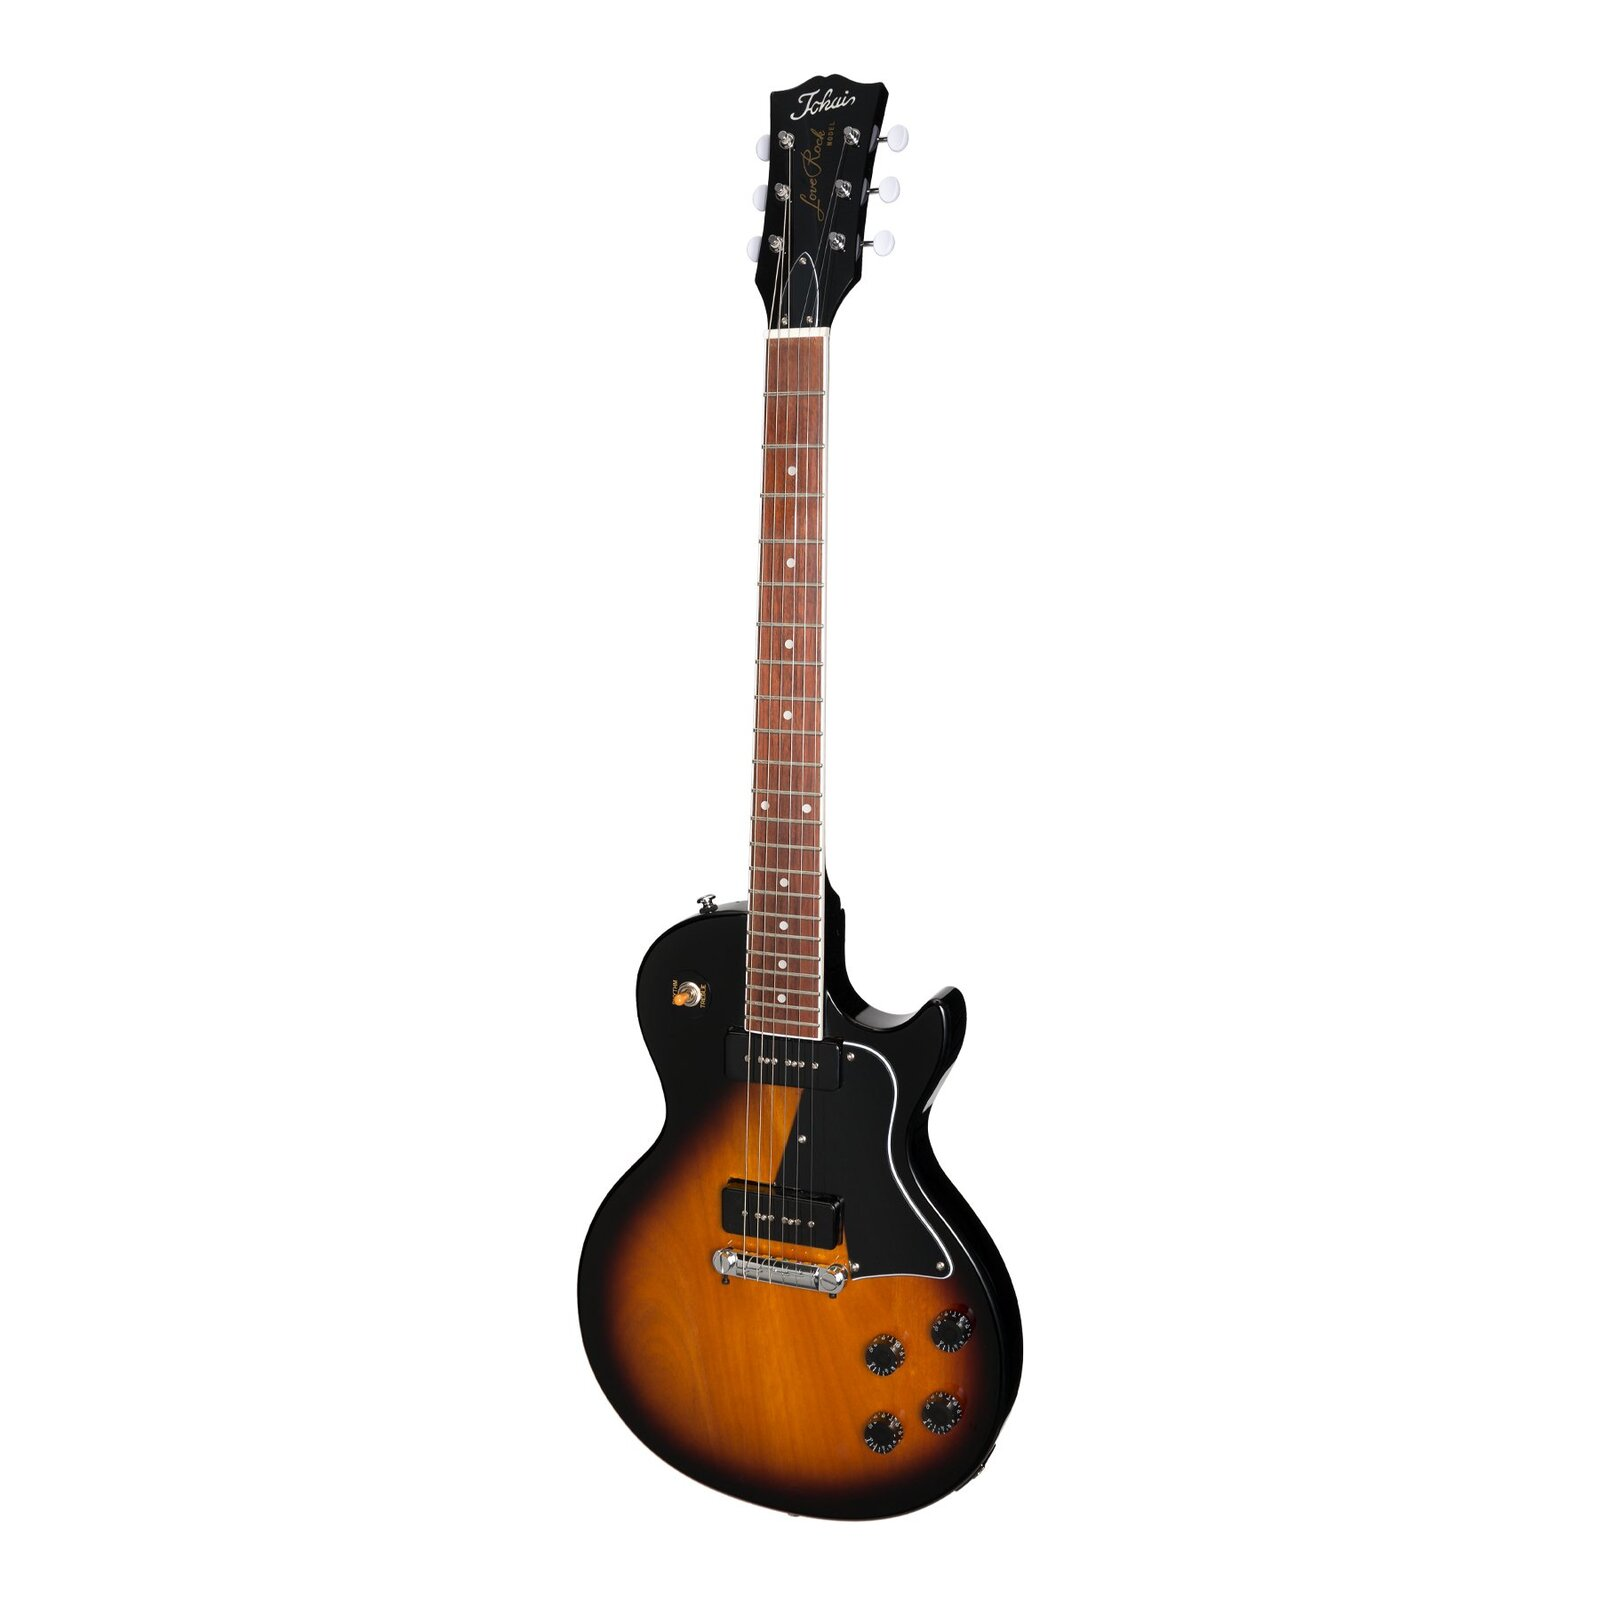 TOKAI 'TRADITIONAL SERIES' LP SPECIAL-STYLE ELECTRIC GUITAR - SUNBURST